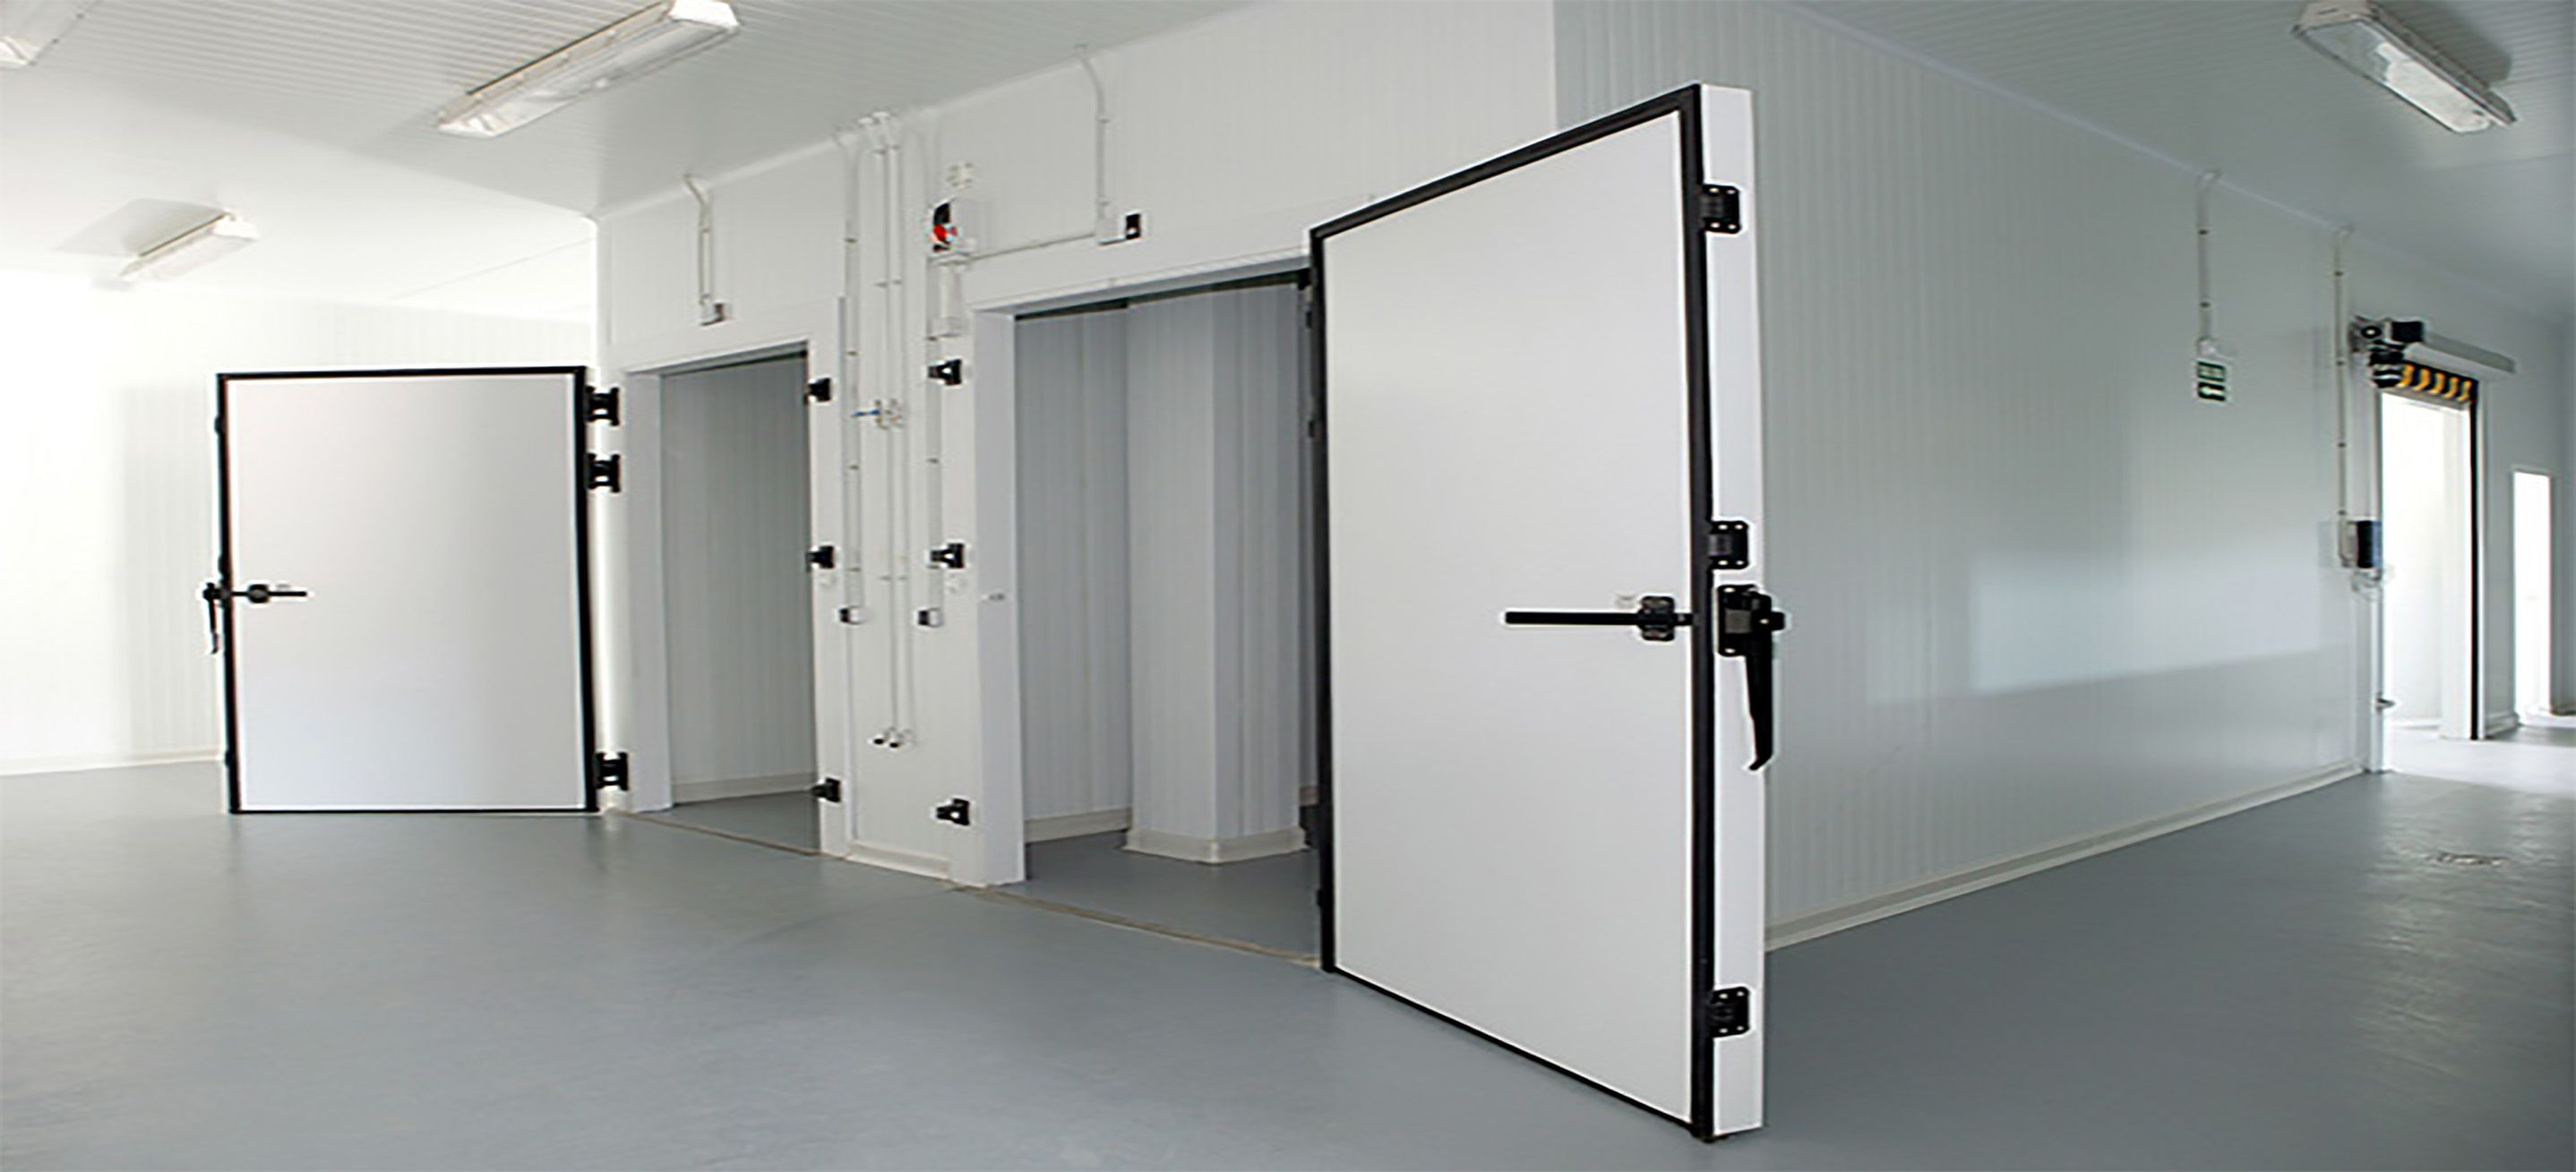 Improve Your Business With Commercialcoolroom And Freezerrooms In Melbourne Visite Https Goo Gl Idhqr7 Store Shelves Design Cool Rooms Cool Doors